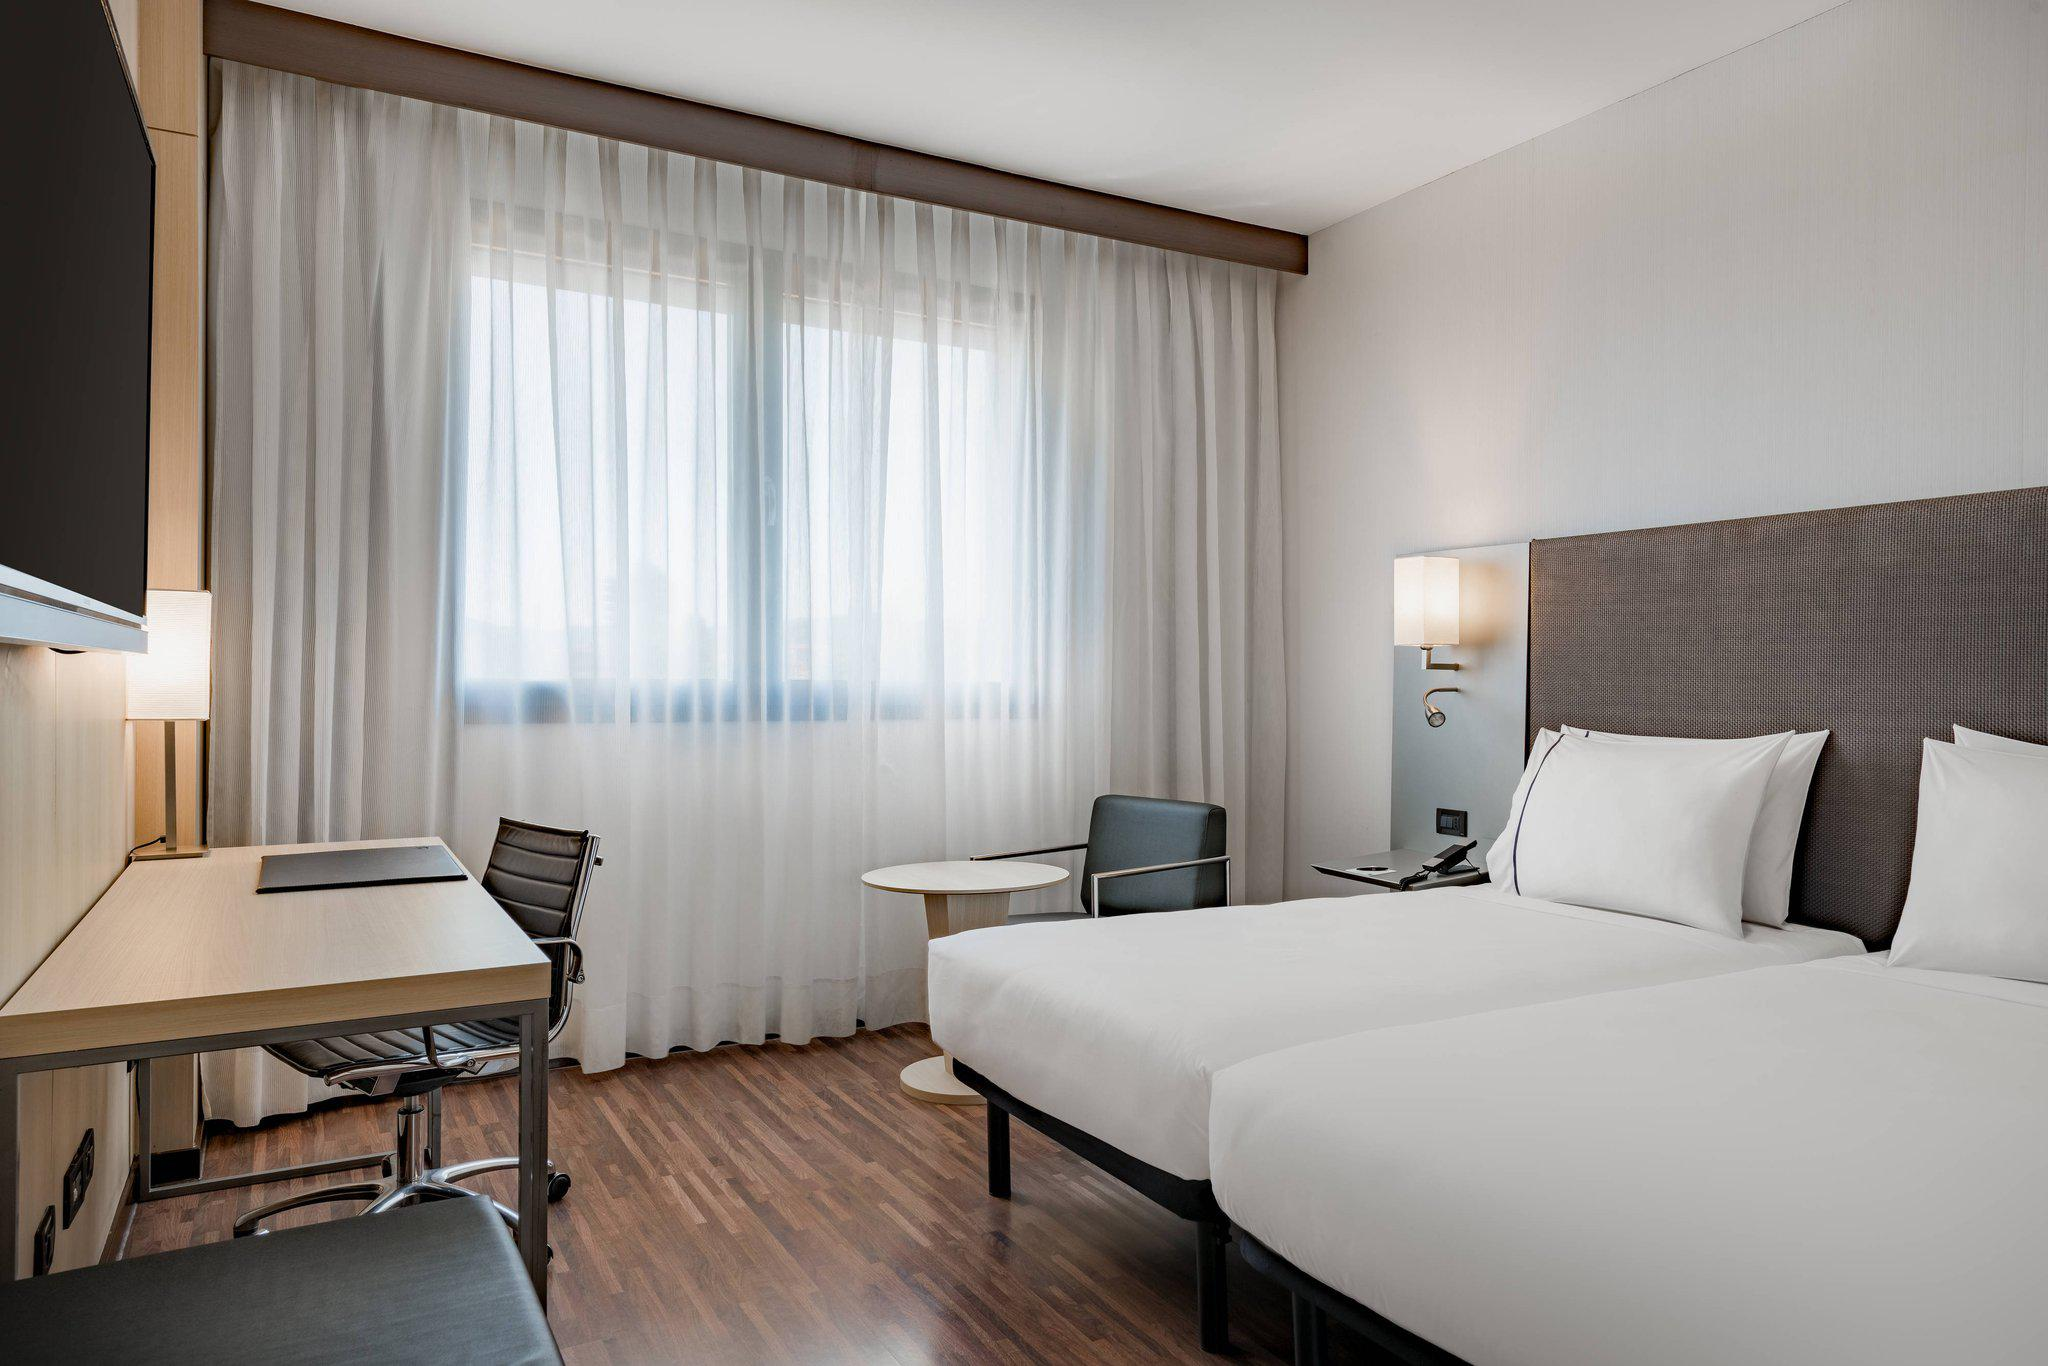 Images AC Hotel by Marriott Bologna